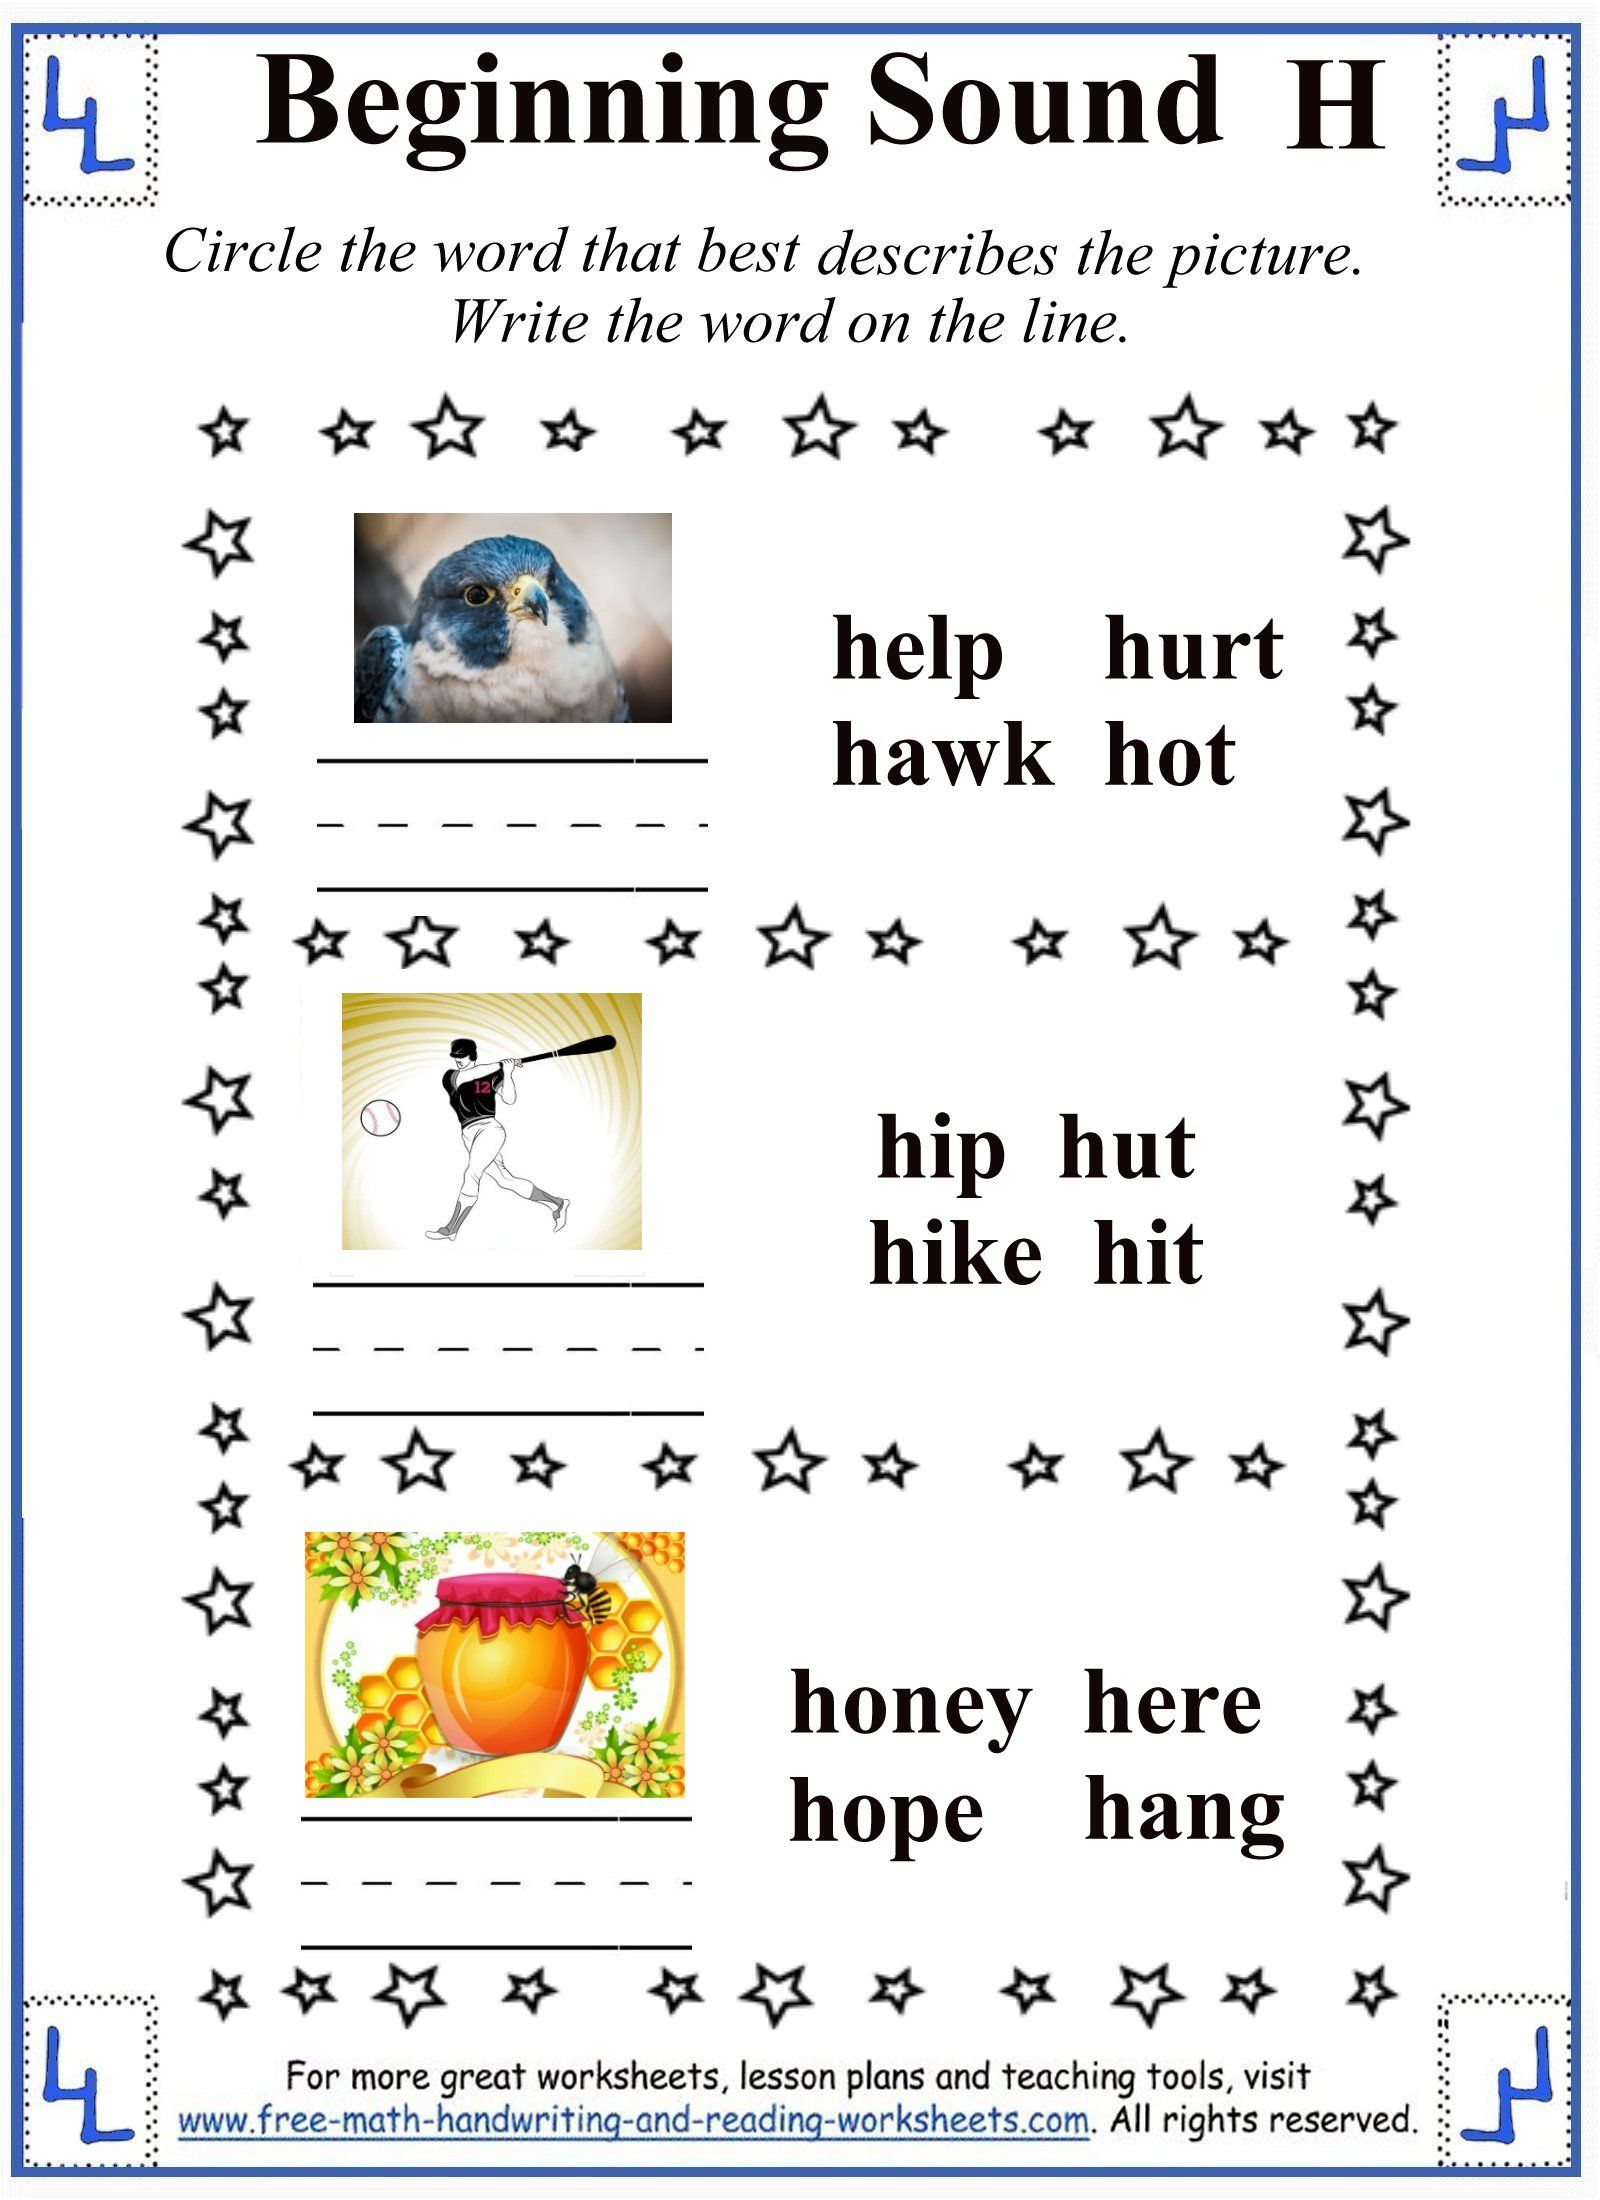 H Letter Worksheet 3